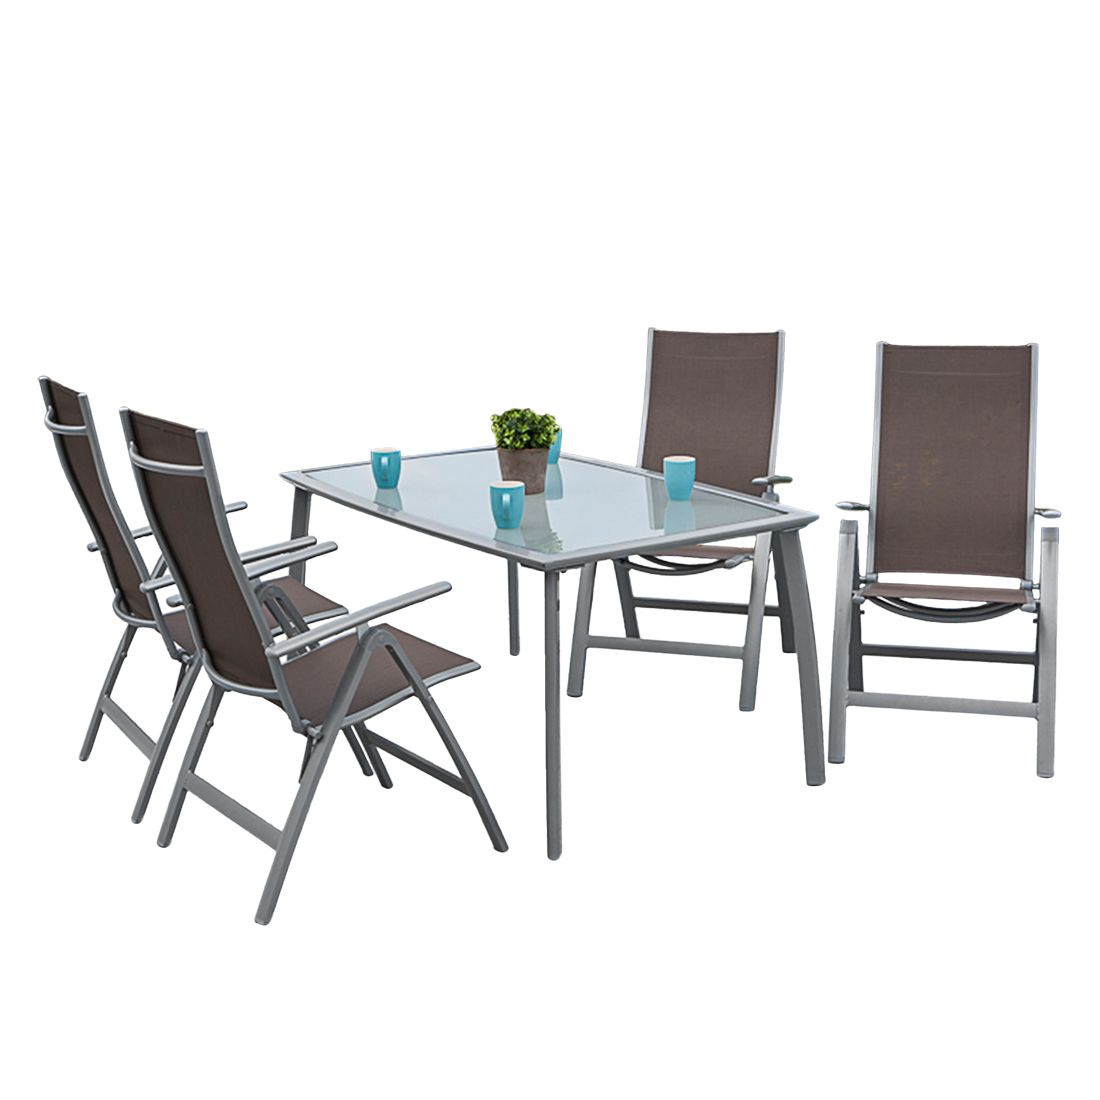 gartenessgruppe carrara iii 5 teilig aluminium taupe merxx g nstig online kaufen. Black Bedroom Furniture Sets. Home Design Ideas